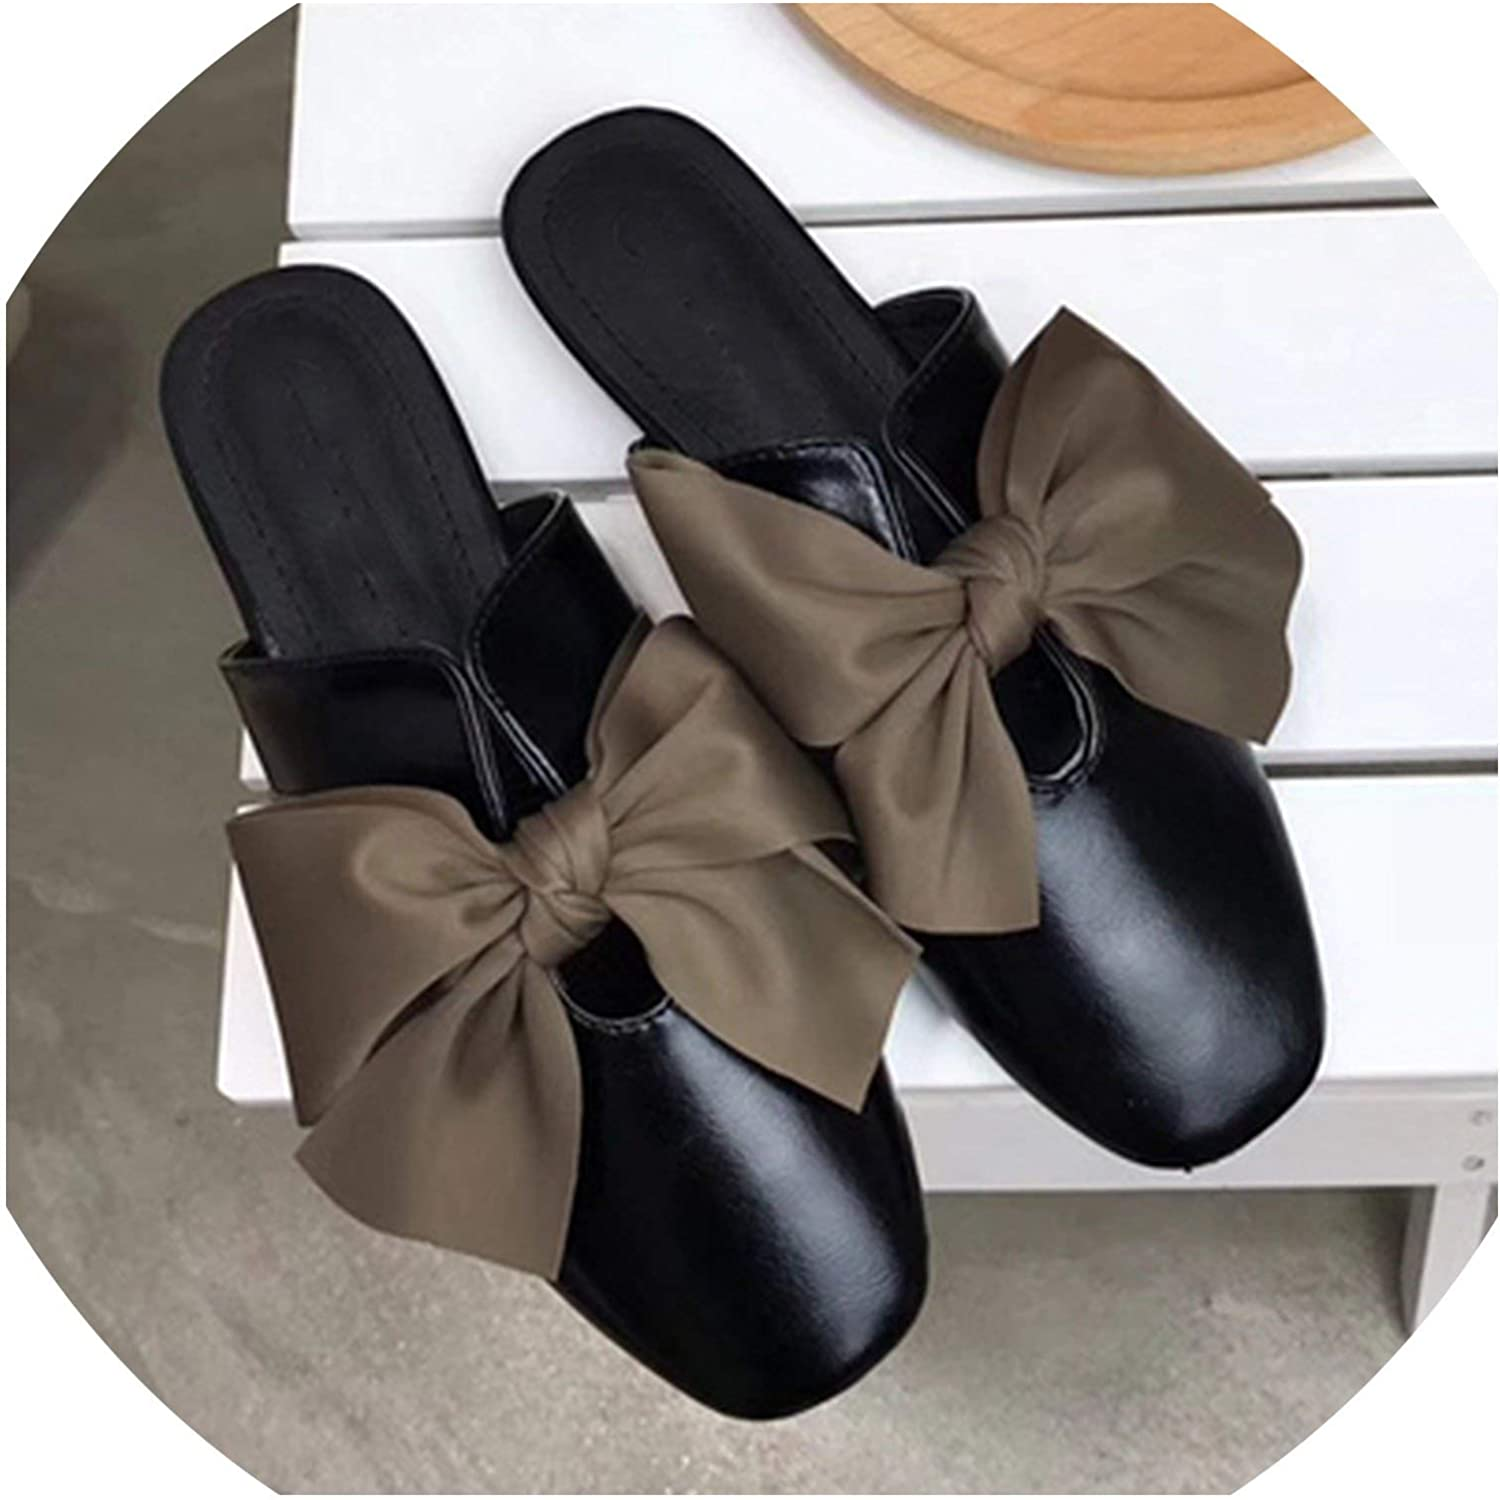 Lewis Pitman Leather shoes Women Mules Bow Tie Soft Pu Flat Slipper Slip-On shoes Vintage Flats Sandals